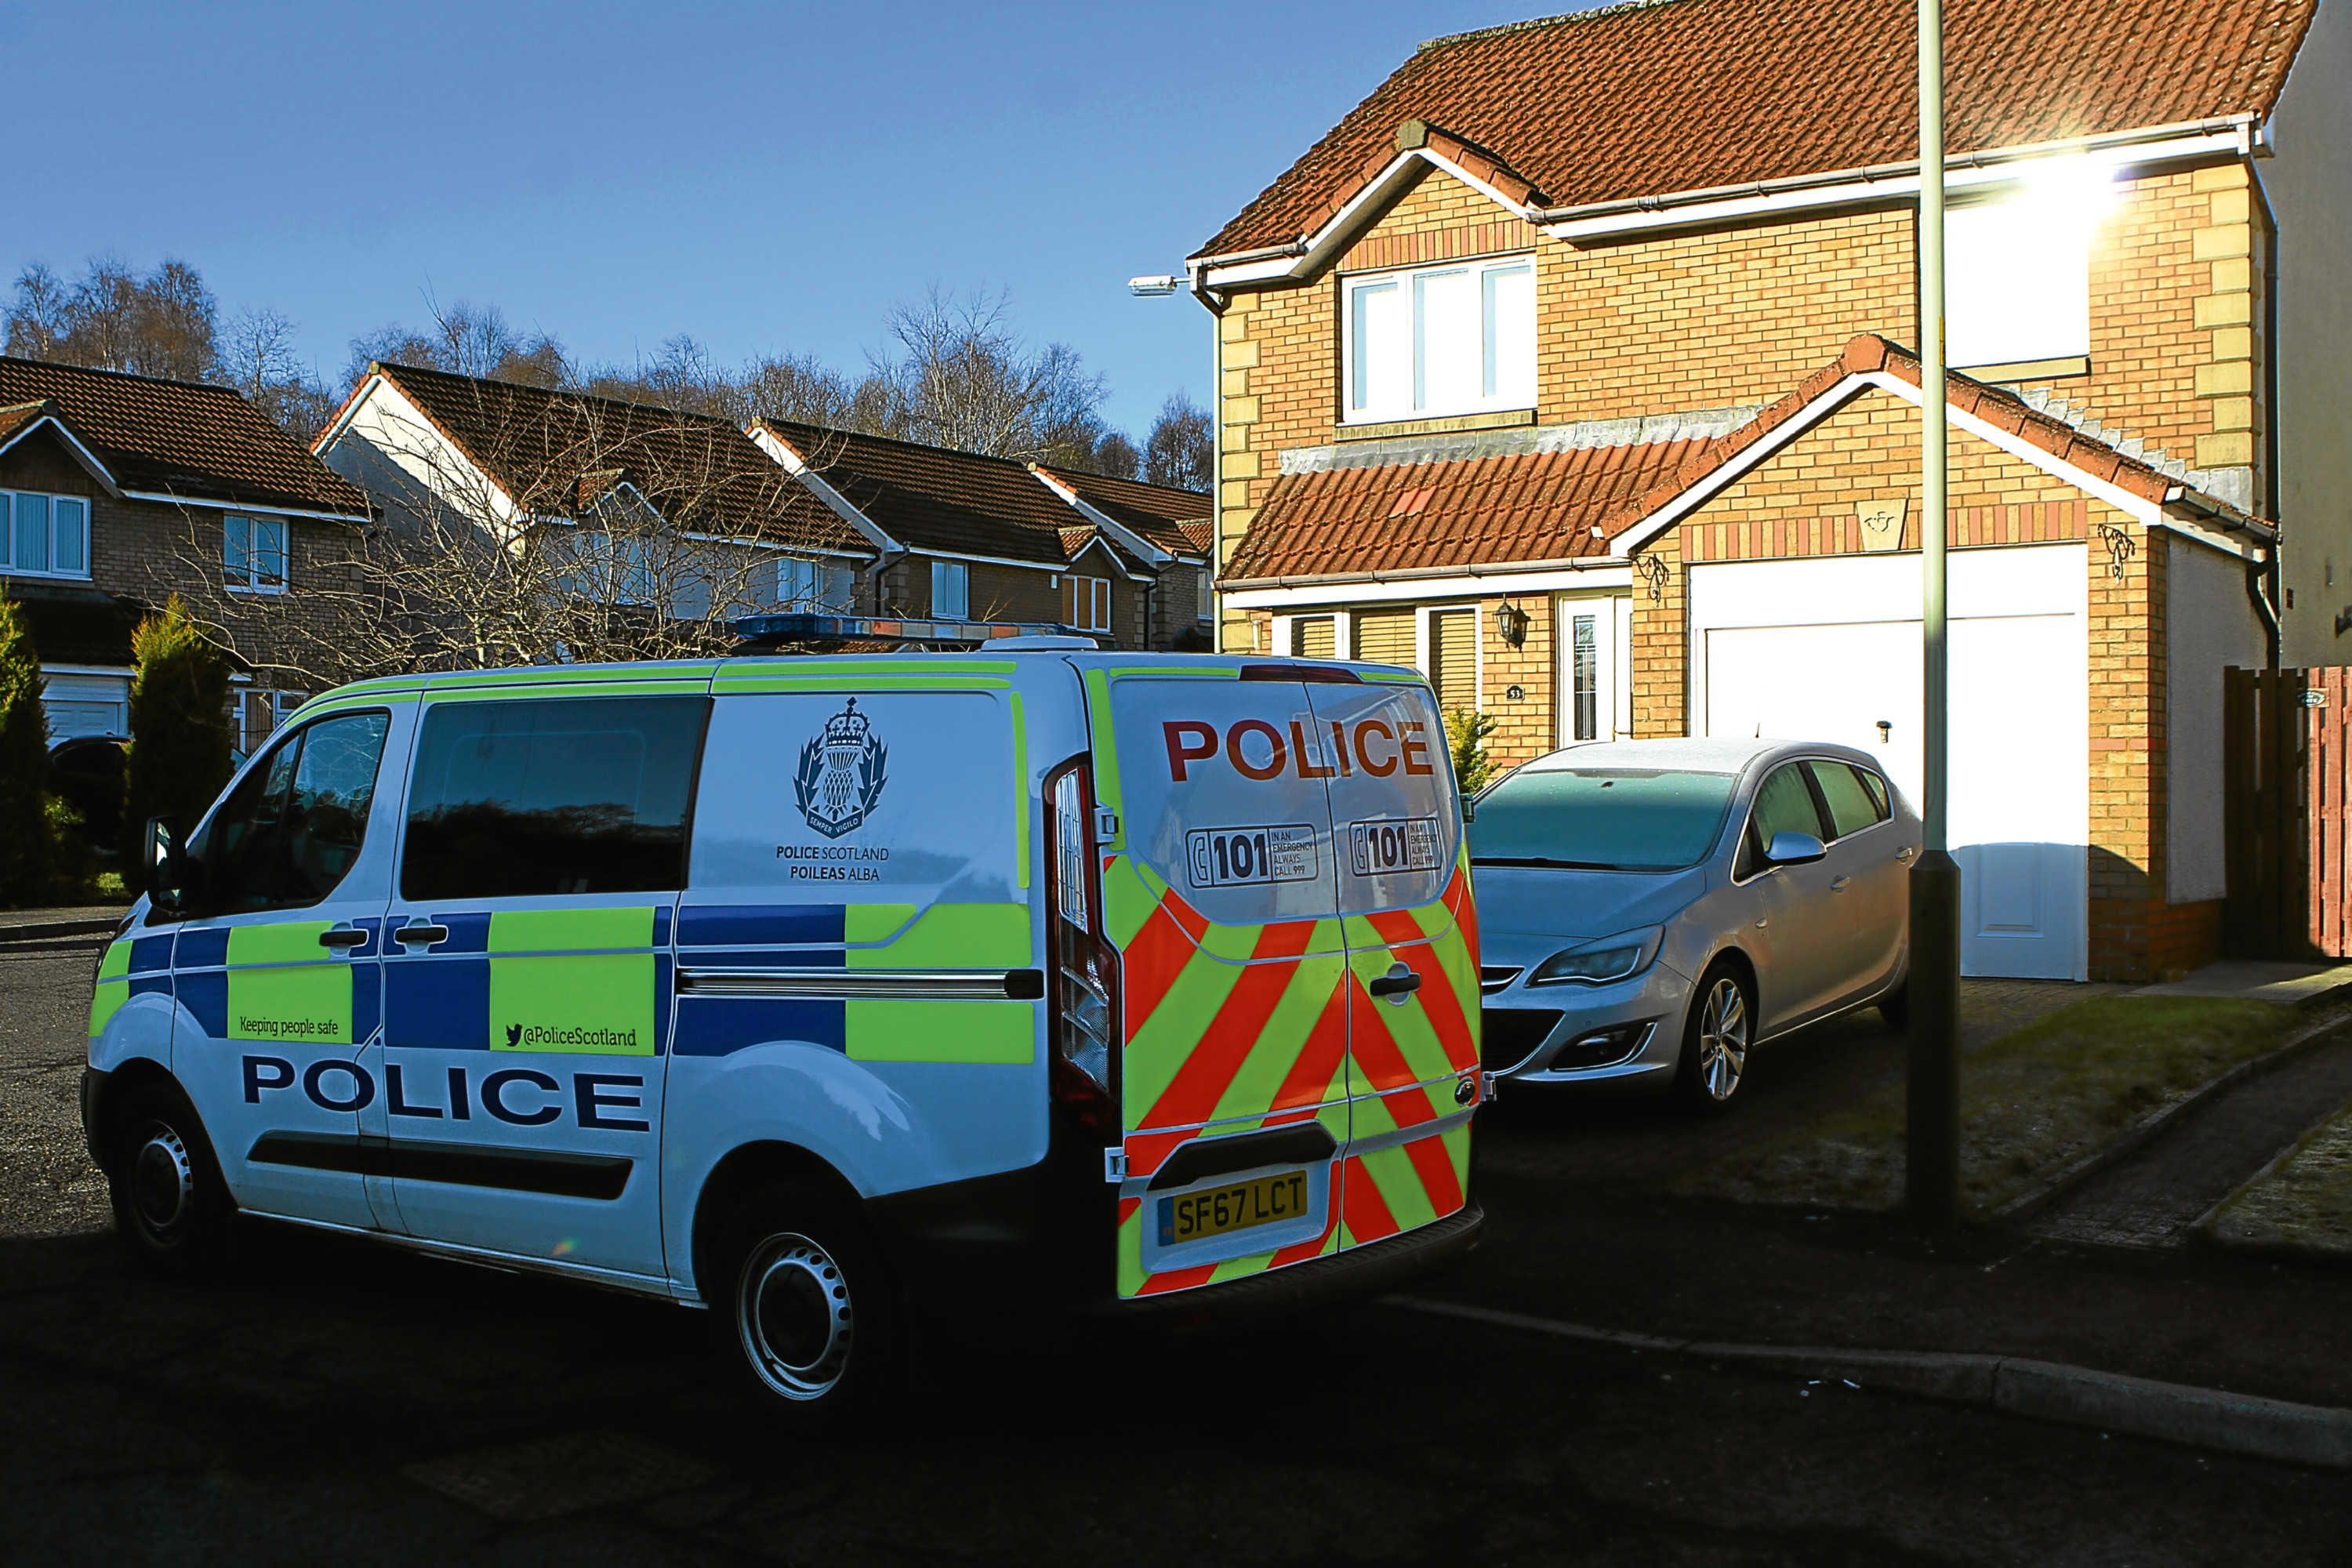 A police presence outside the property in Clattowoods Road